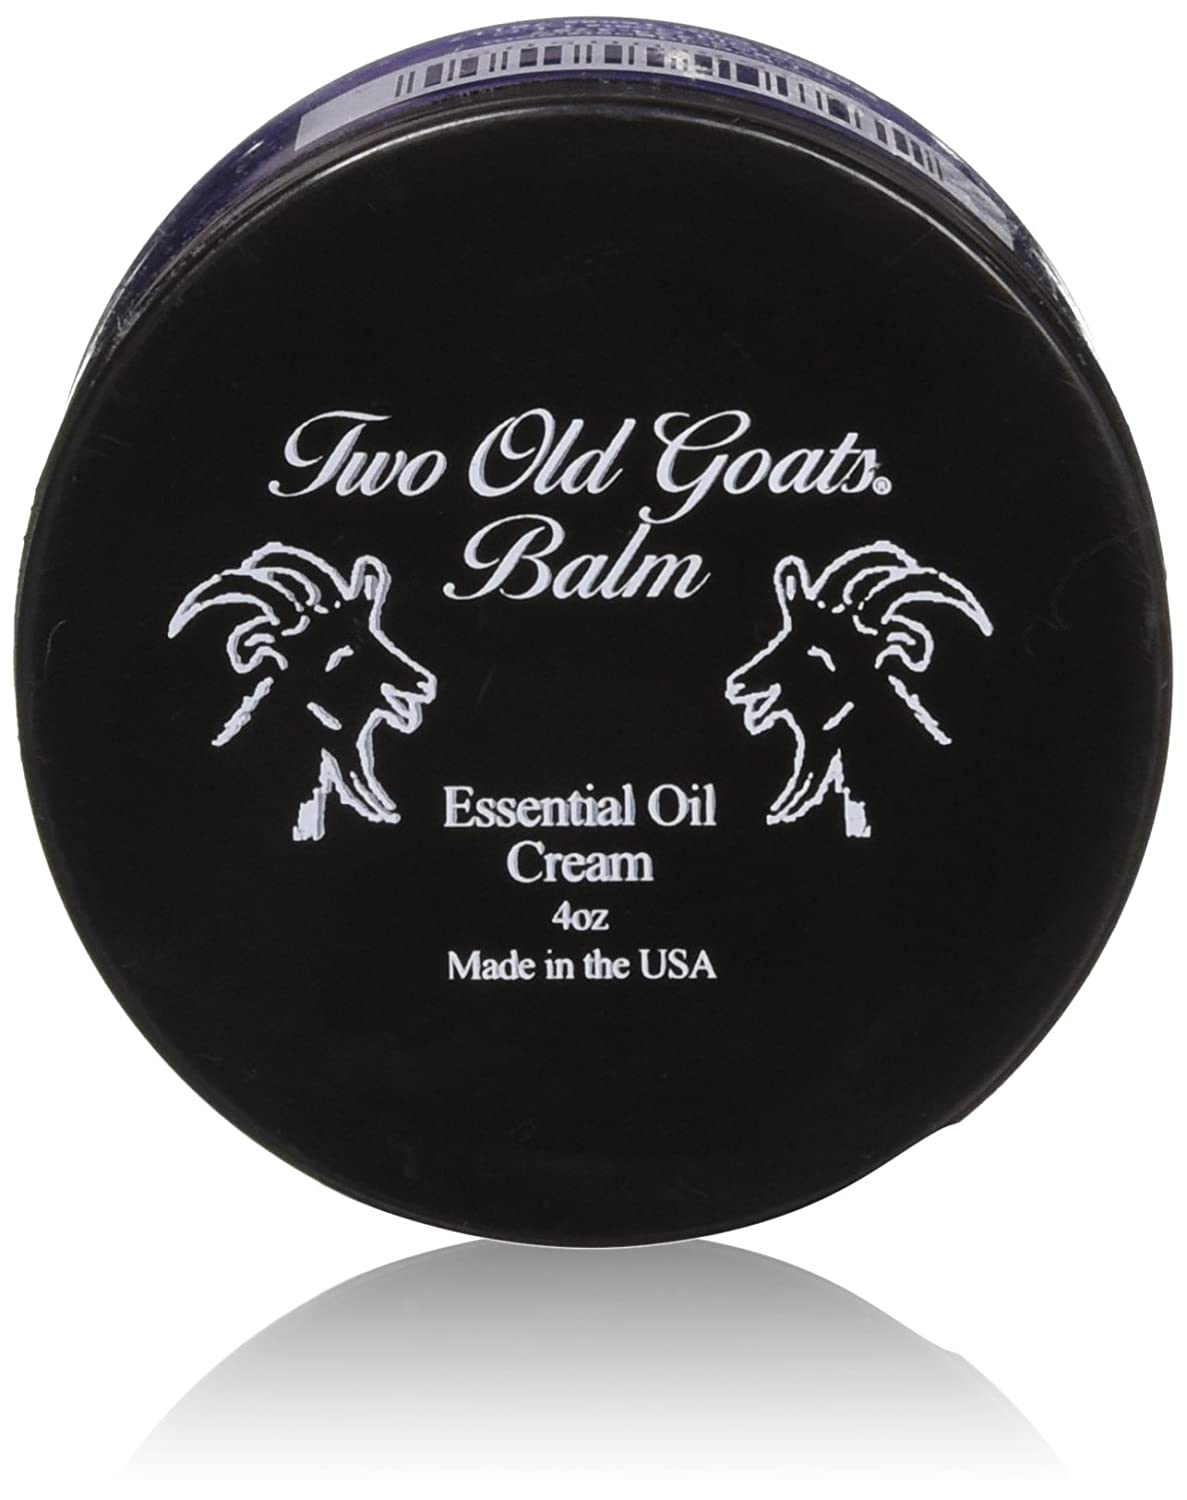 Two Old Goats Foot Balm Lotion, 4 oz BW Skin Care Inc